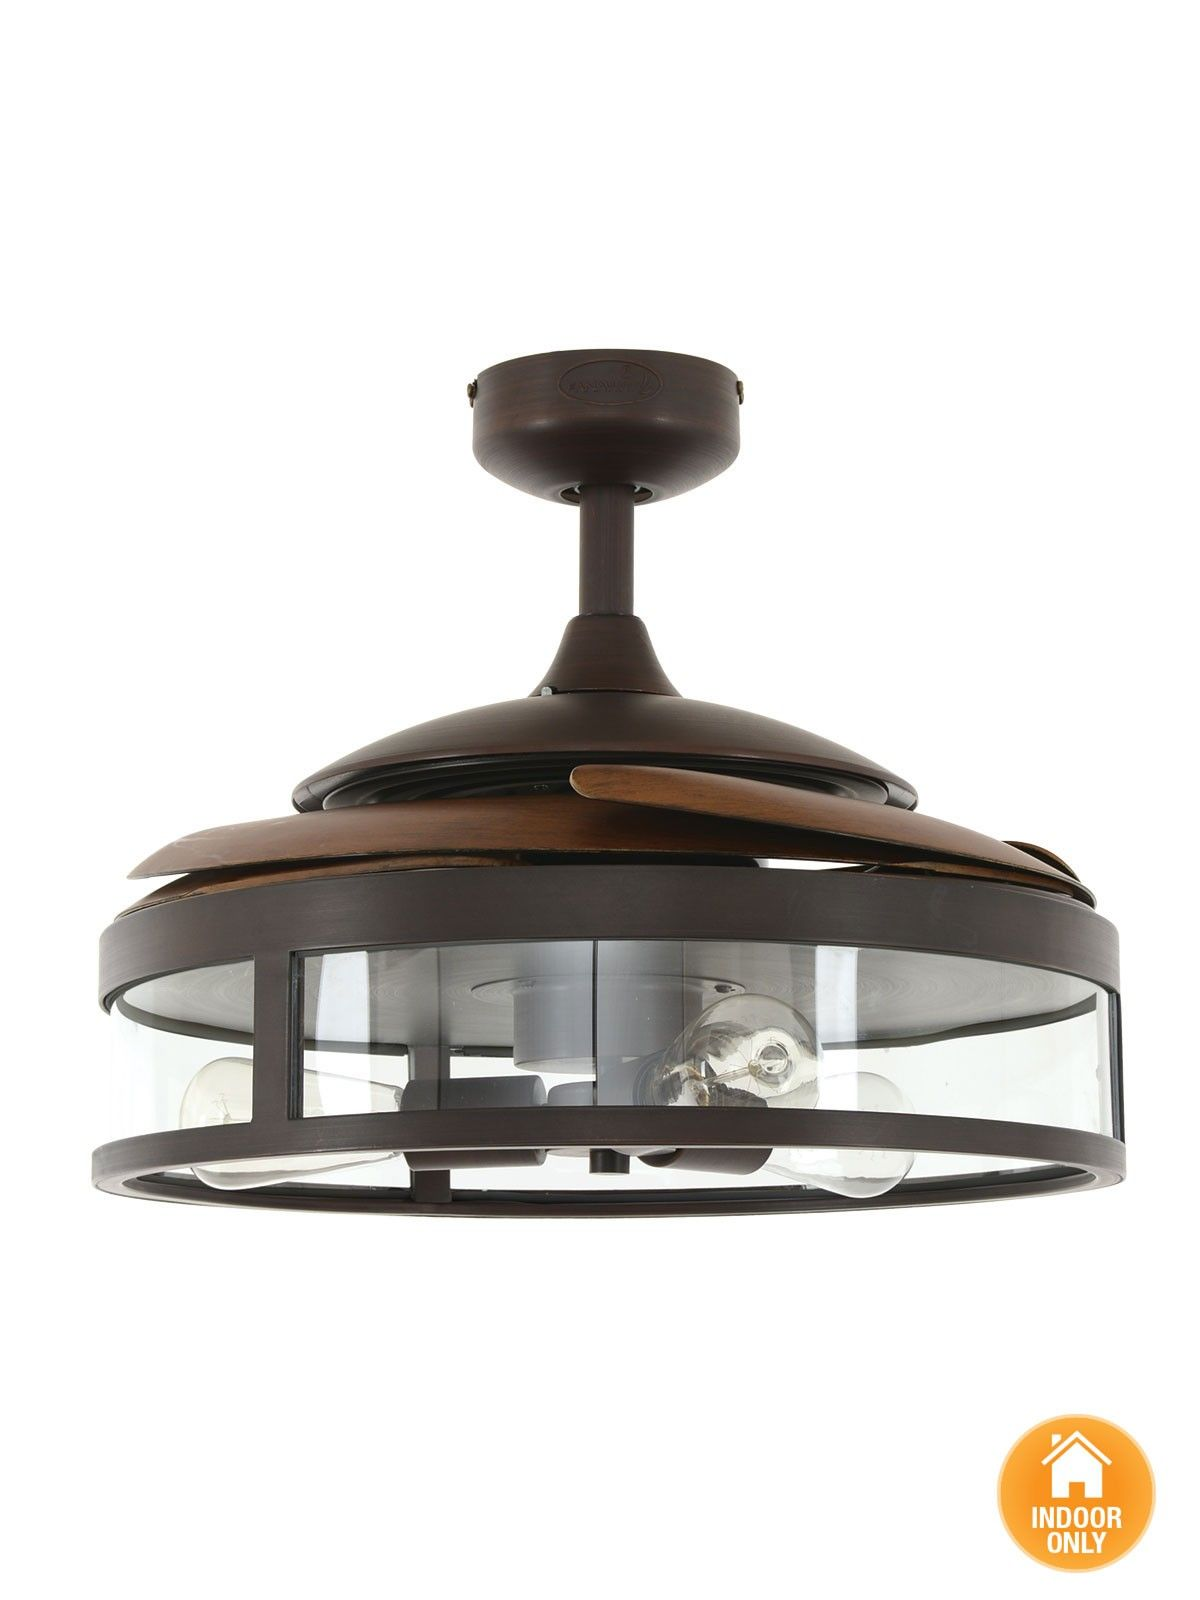 Fanaway Classic ORB Ceiling Fan With Clear Retractable Blades and